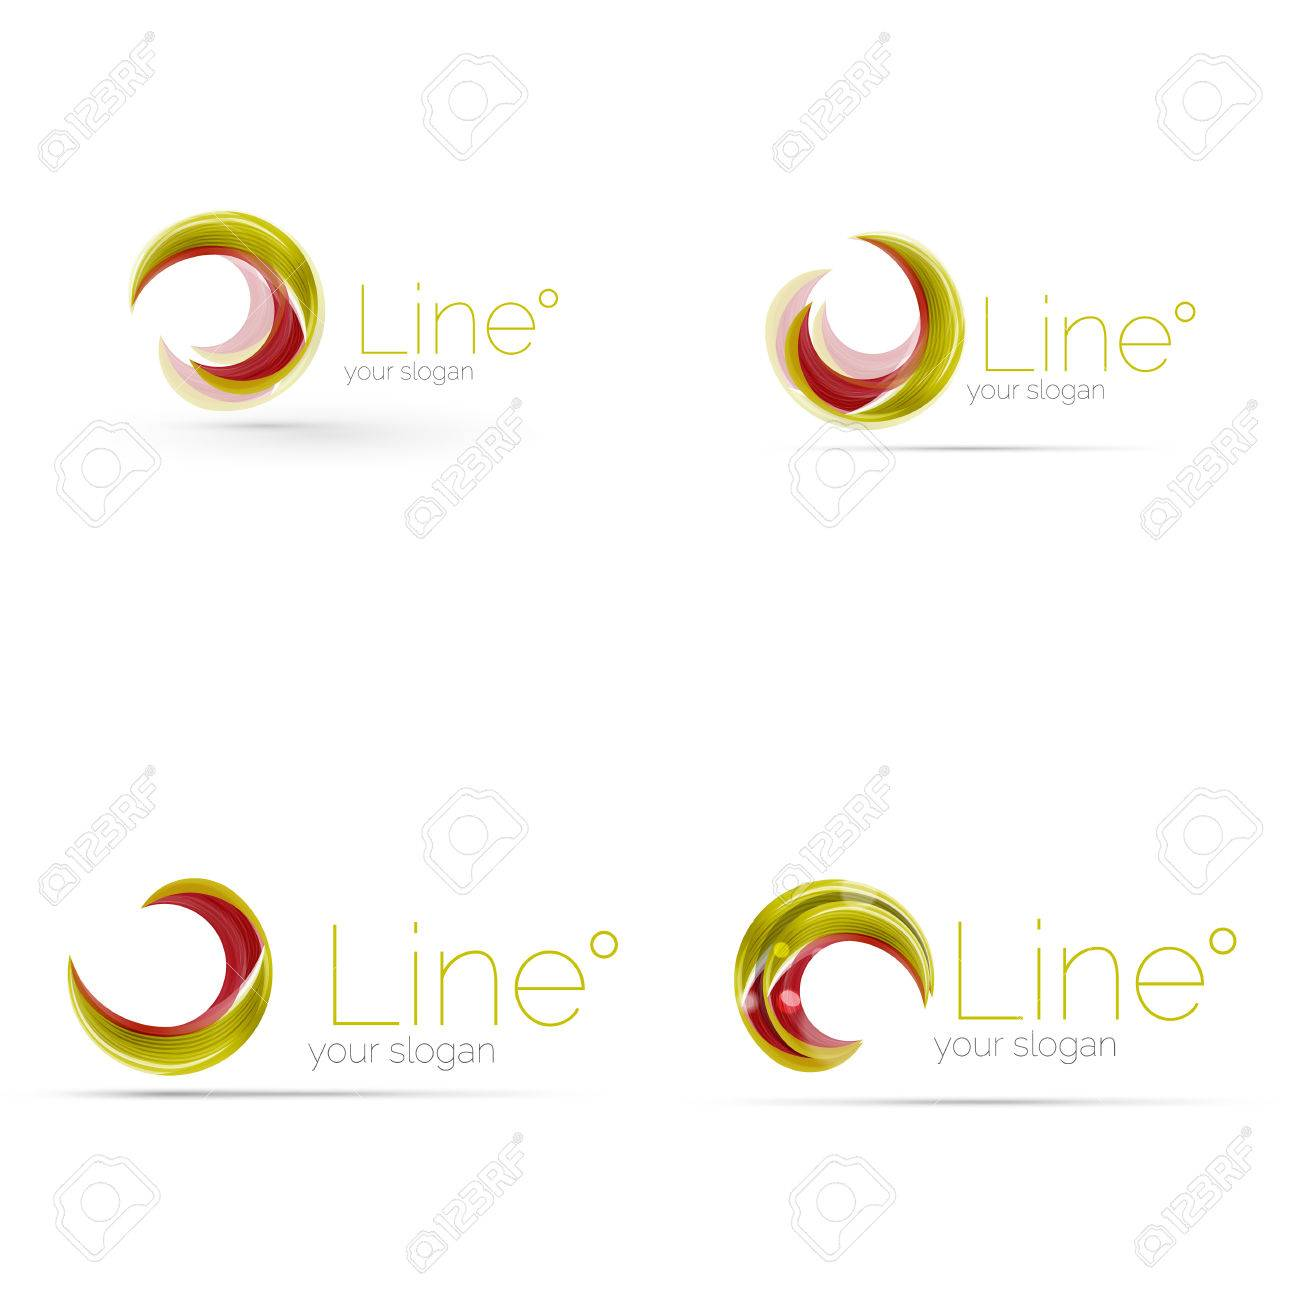 Swirl company logo design. Universal for all ideas and concepts...